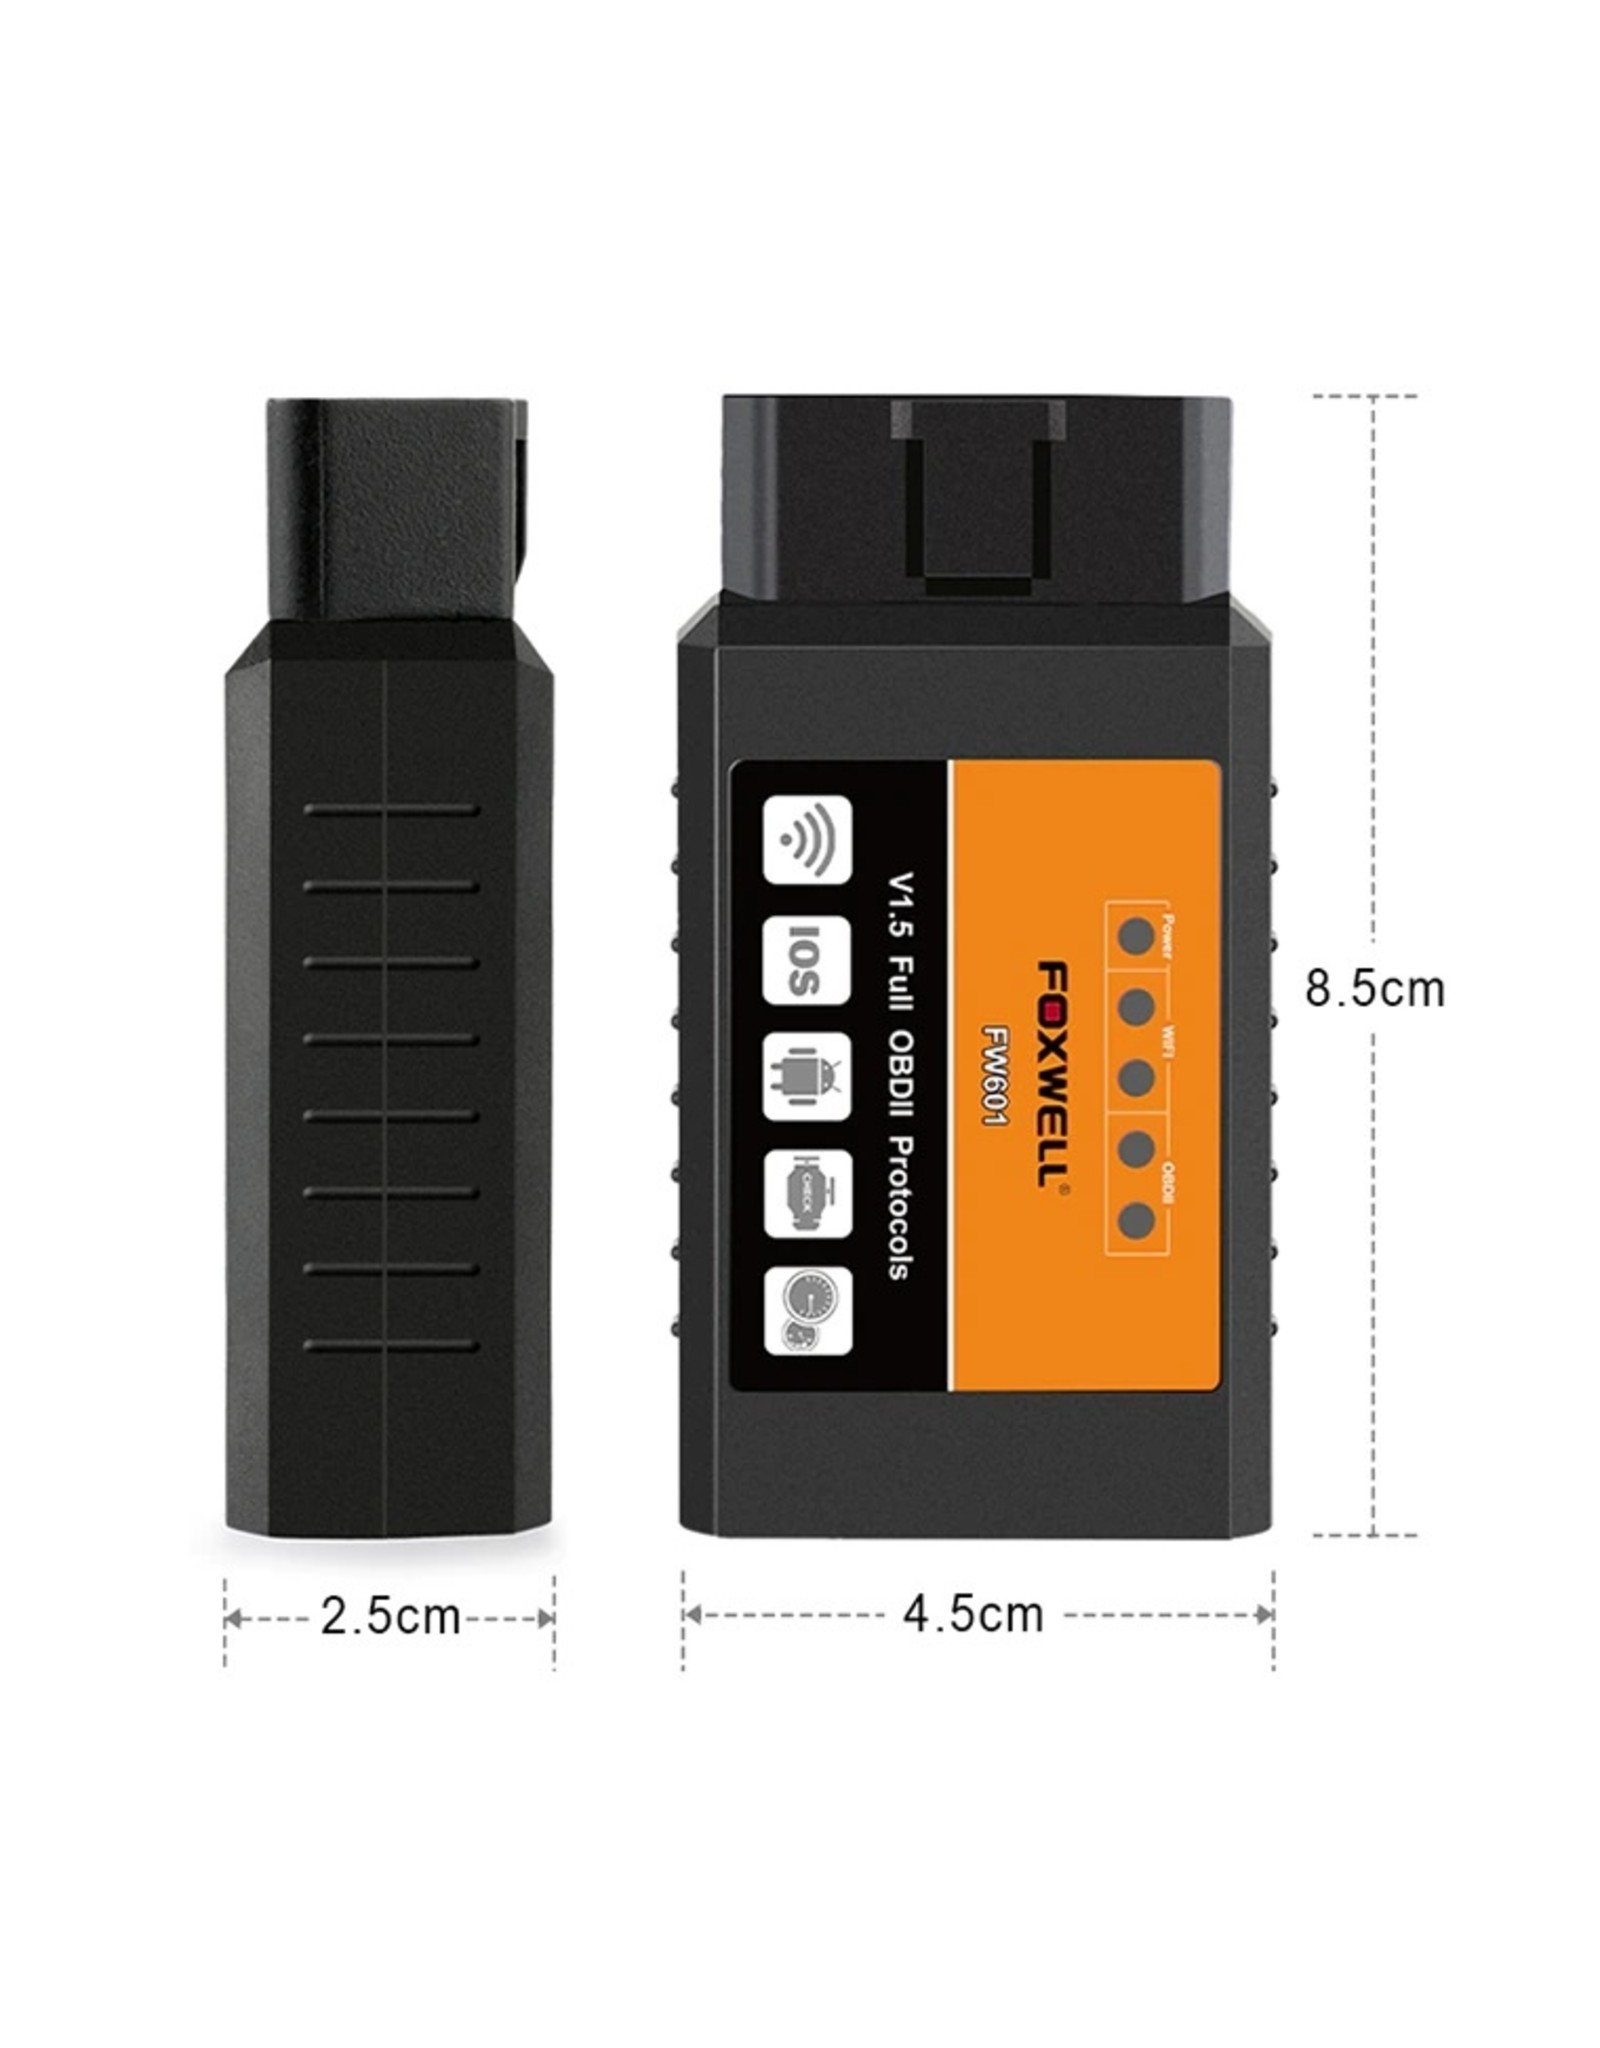 FOXWELL OBD2 WiFi ELM327 V 1.5 Scanner Auto OBDII-scantool voor IOS Android